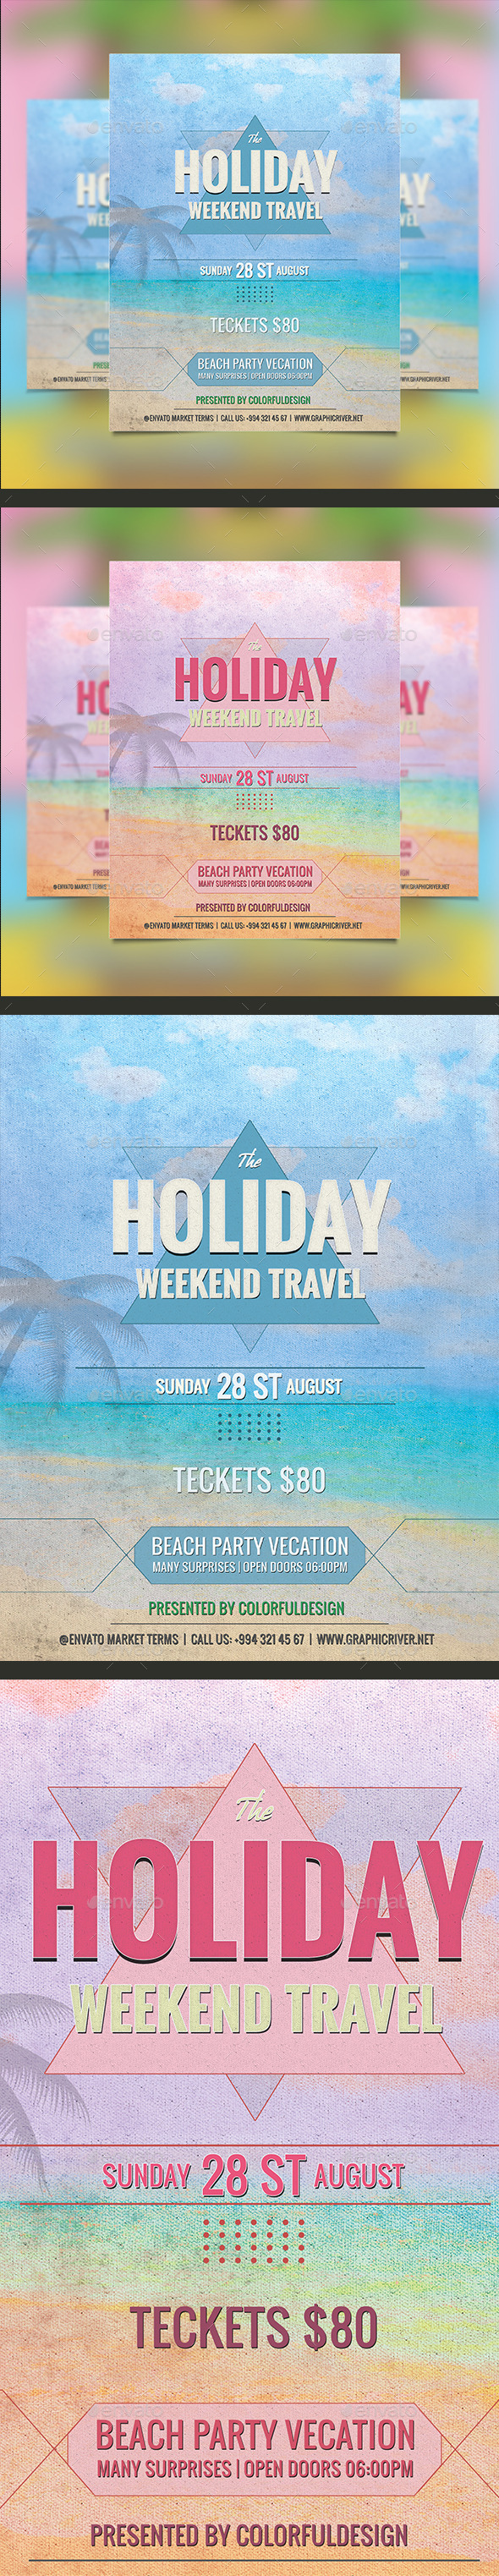 Holiday Travel Flyer Template - Events Flyers